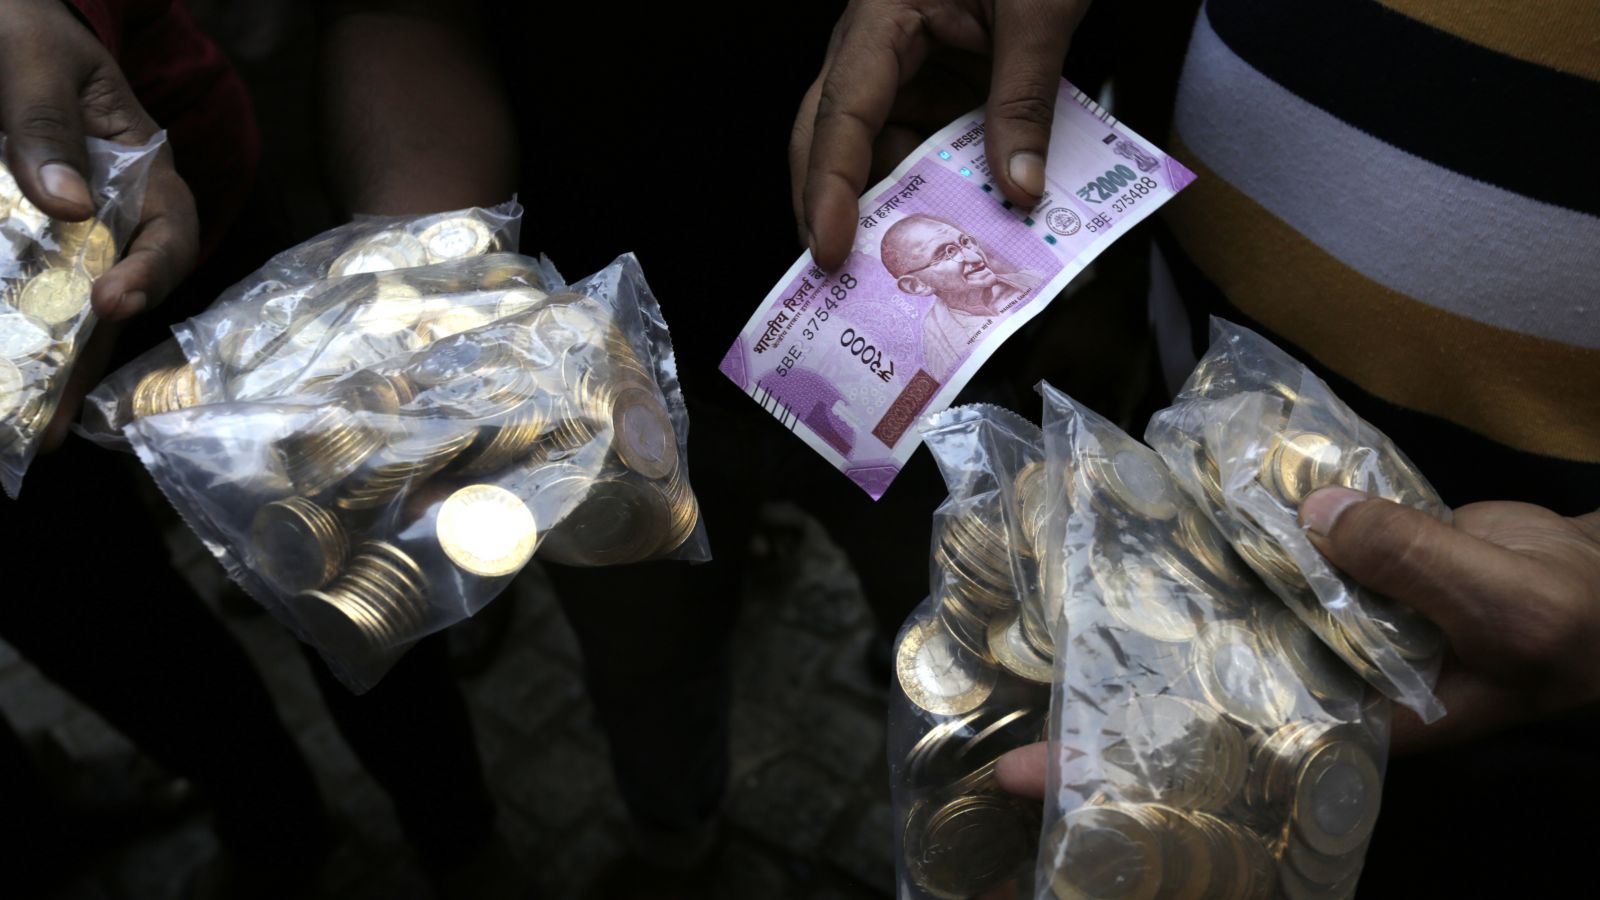 An Indian shows a new Rupees 2000 currency note and coins of Rupees 10 he received in exchange of discontinued currency outside the Reserve Bank of India in Kolkata, India, Wednesday, Nov. 16, 2016. India announced a week ago that it was withdrawing 500 and 1,000 rupee notes as legal tender to fight corruption and tax evasion. However, people are allowed a onetime swap of 4,000 rupees ($59) at any bank in exchange for smaller notes to meet immediate needs.